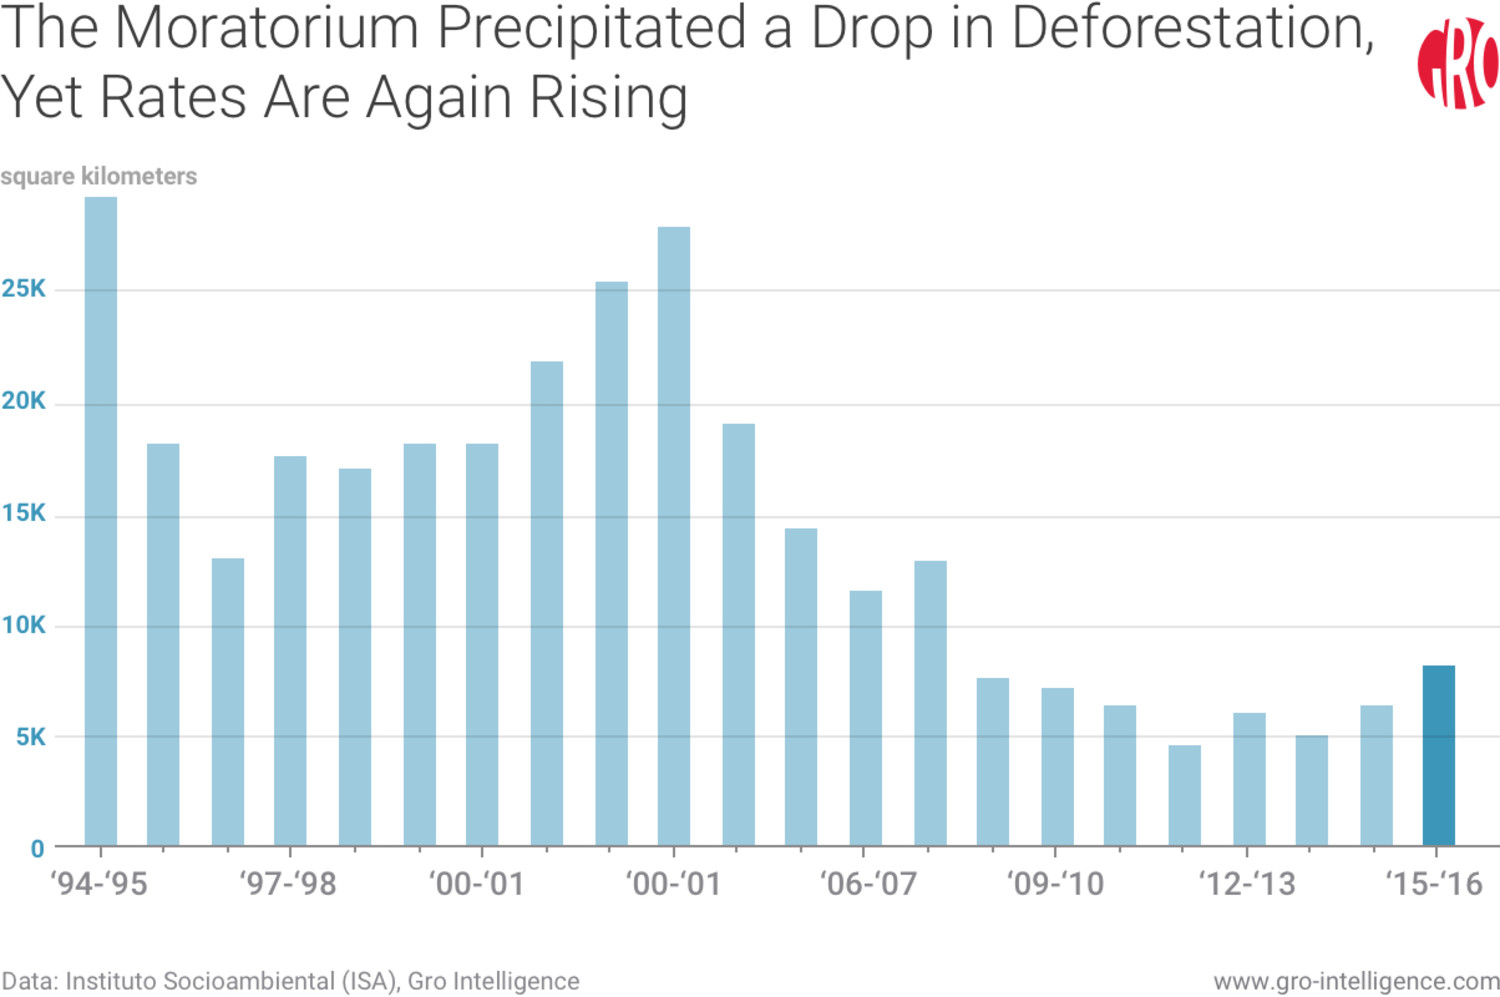 The Moratorium Precipitated a Drop in Deforestation, Yet Rates Are Again Rising